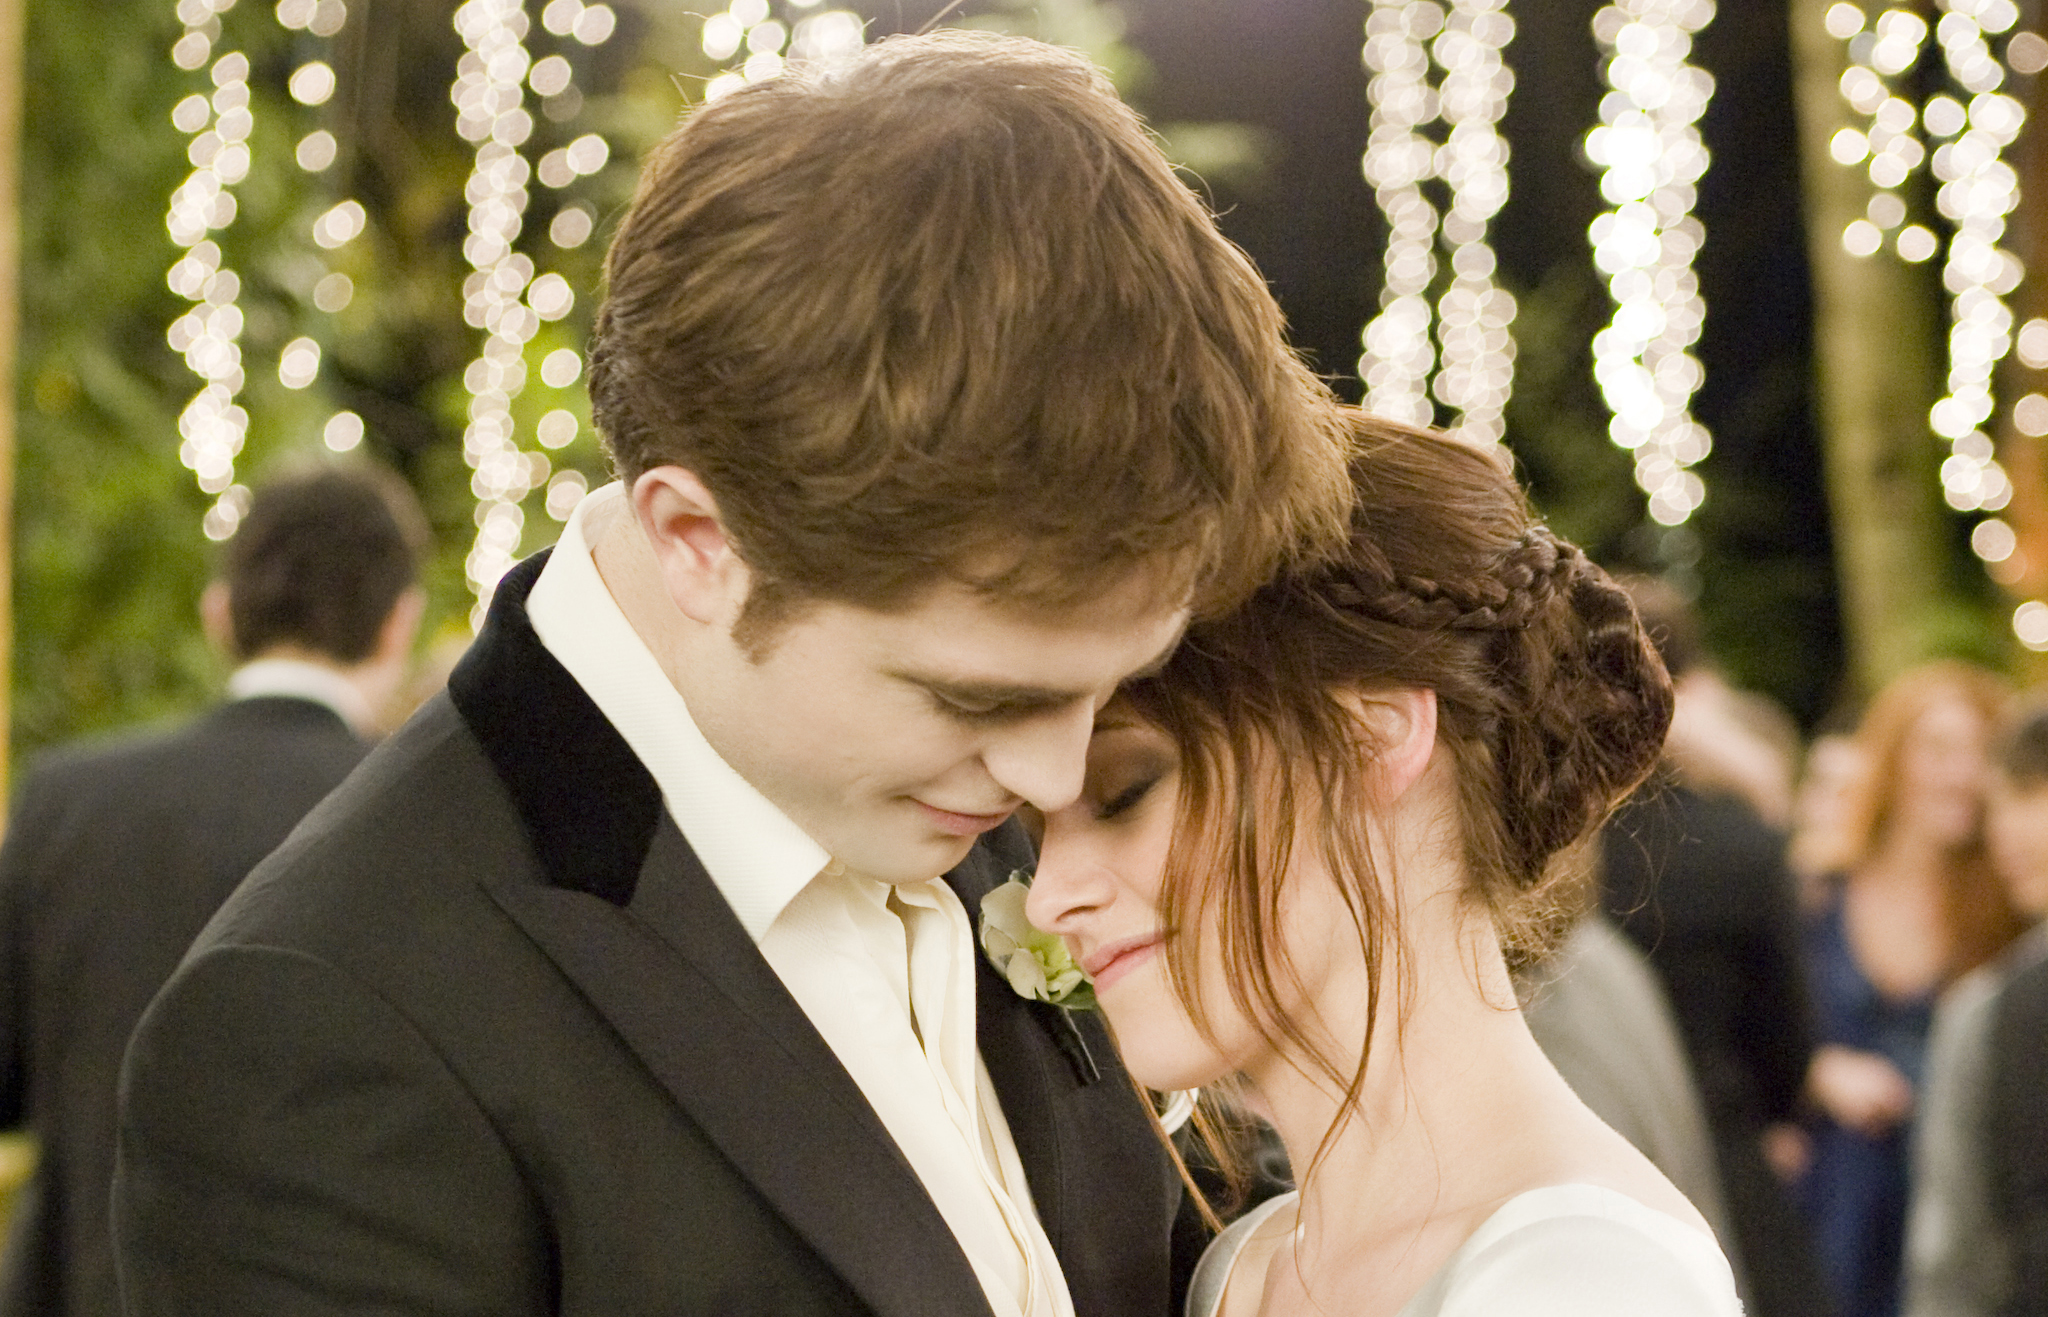 Four New Wedding Scene Images from Twilight Breaking Dawn Part 1